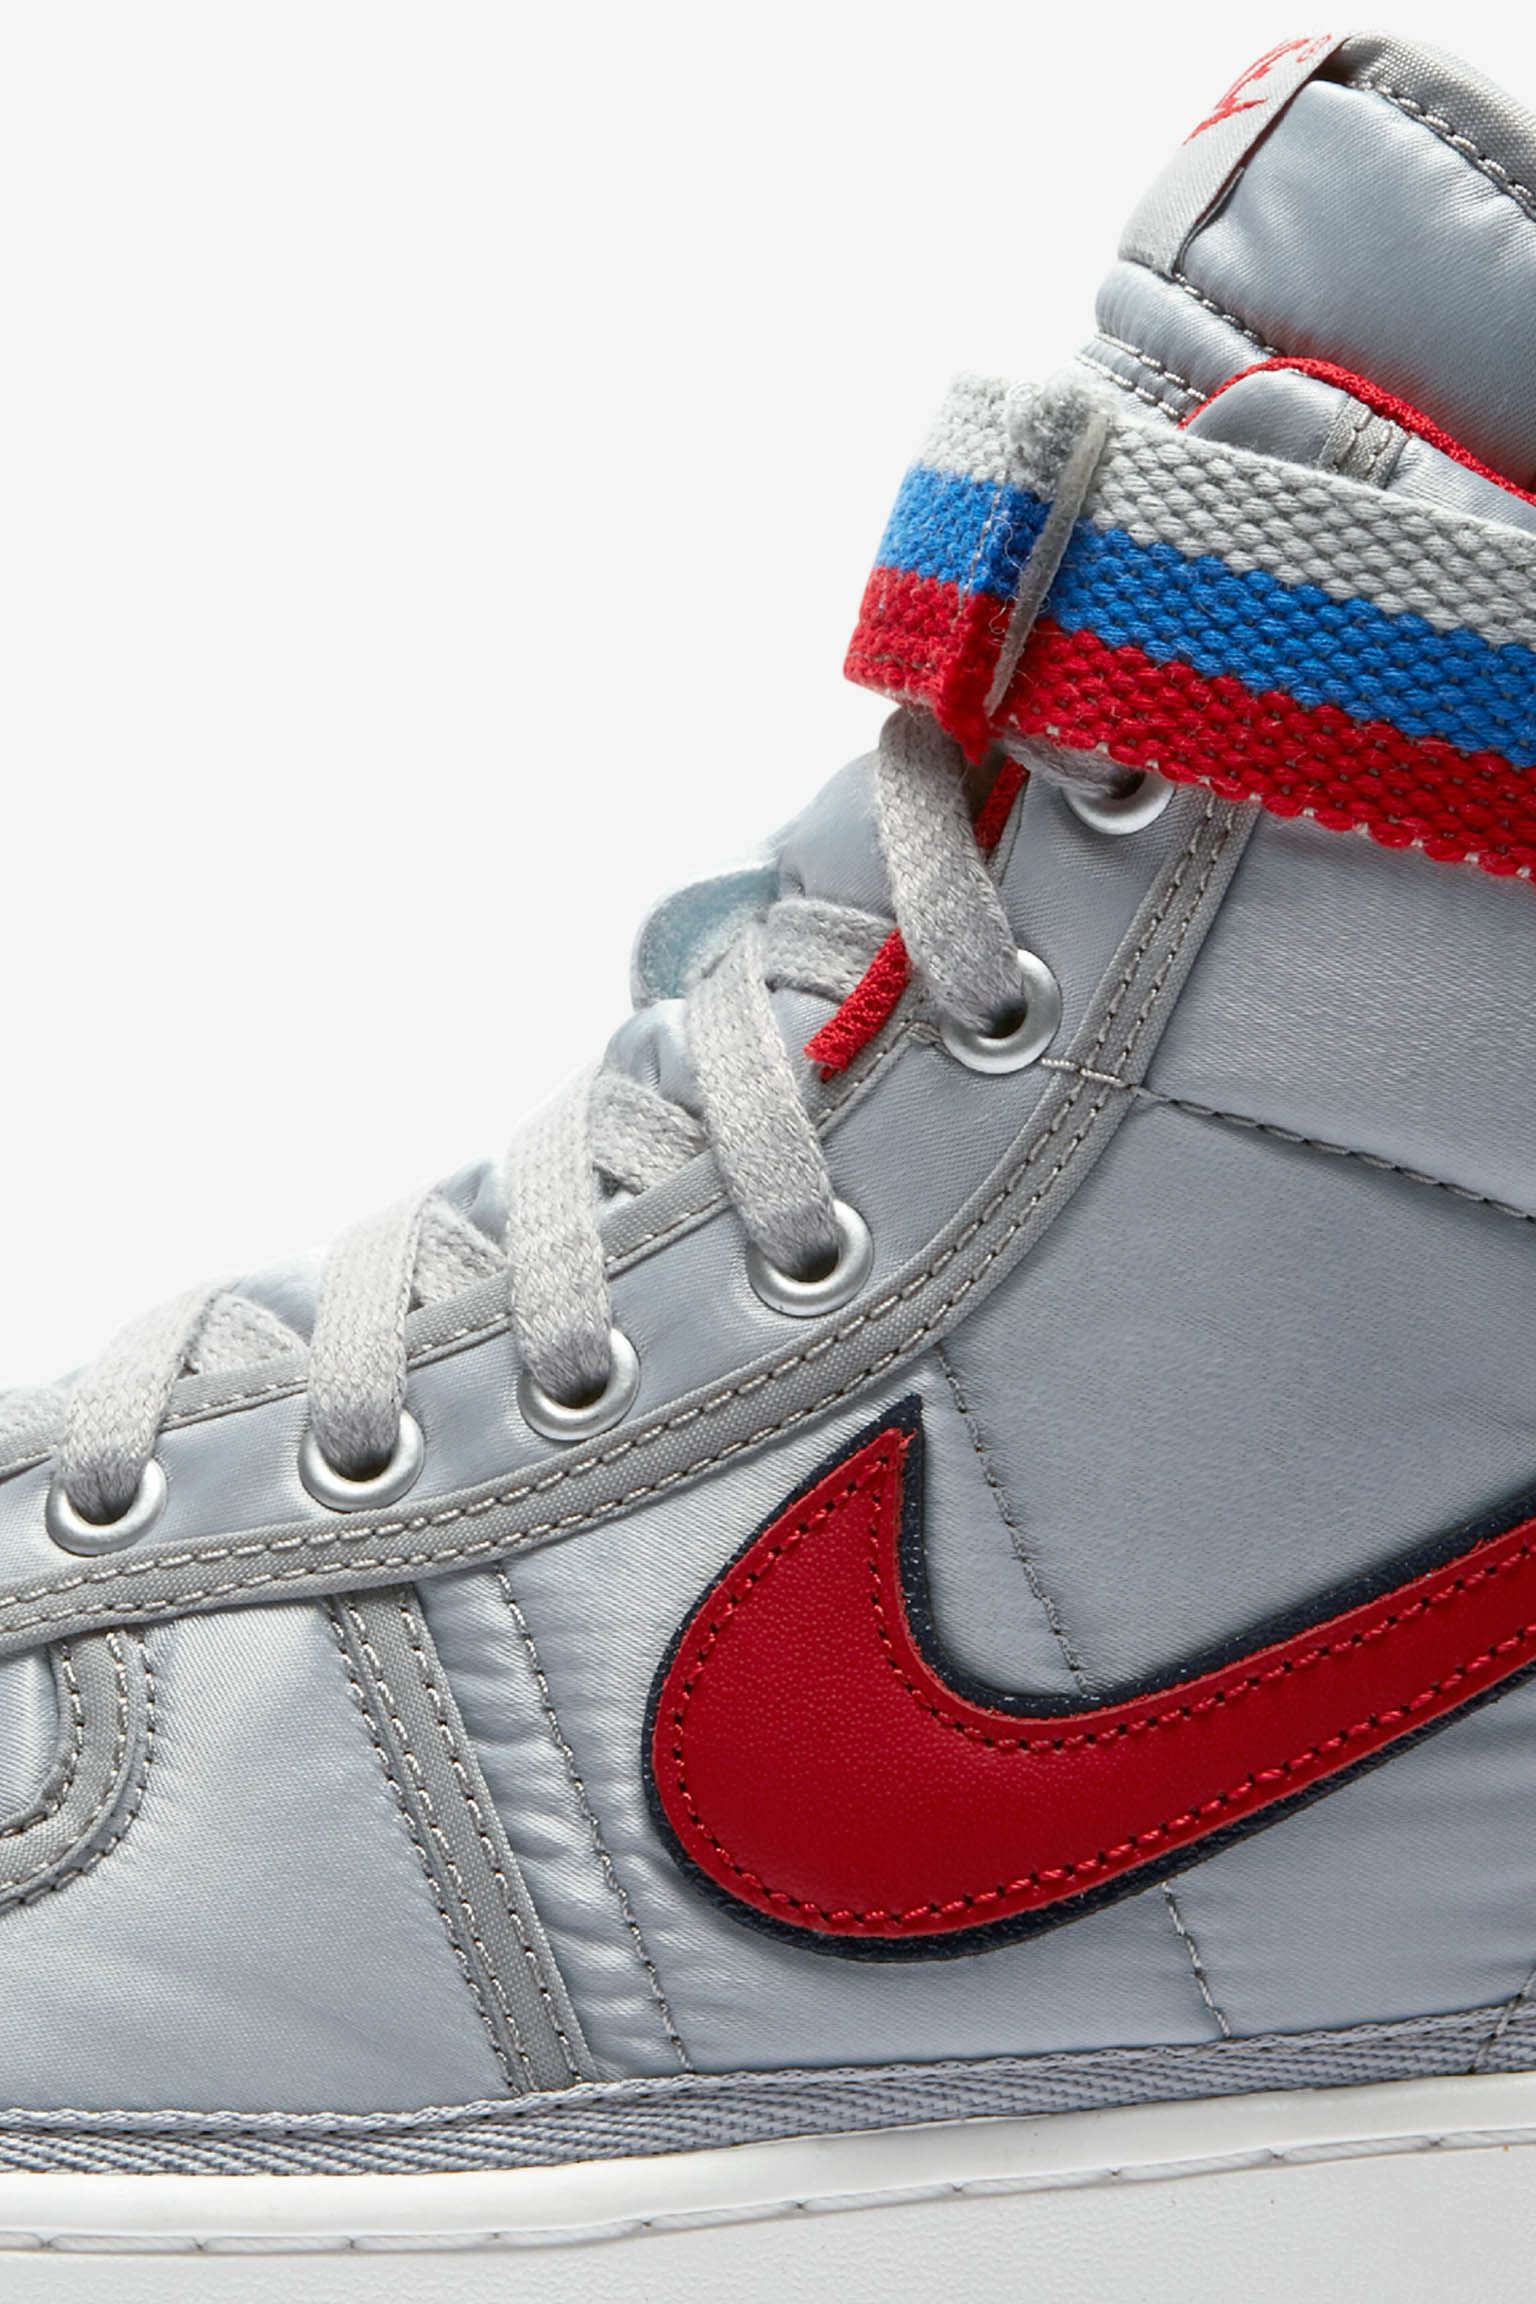 Nike Vandal High 'Metallic Silver & University Red' Release Date.